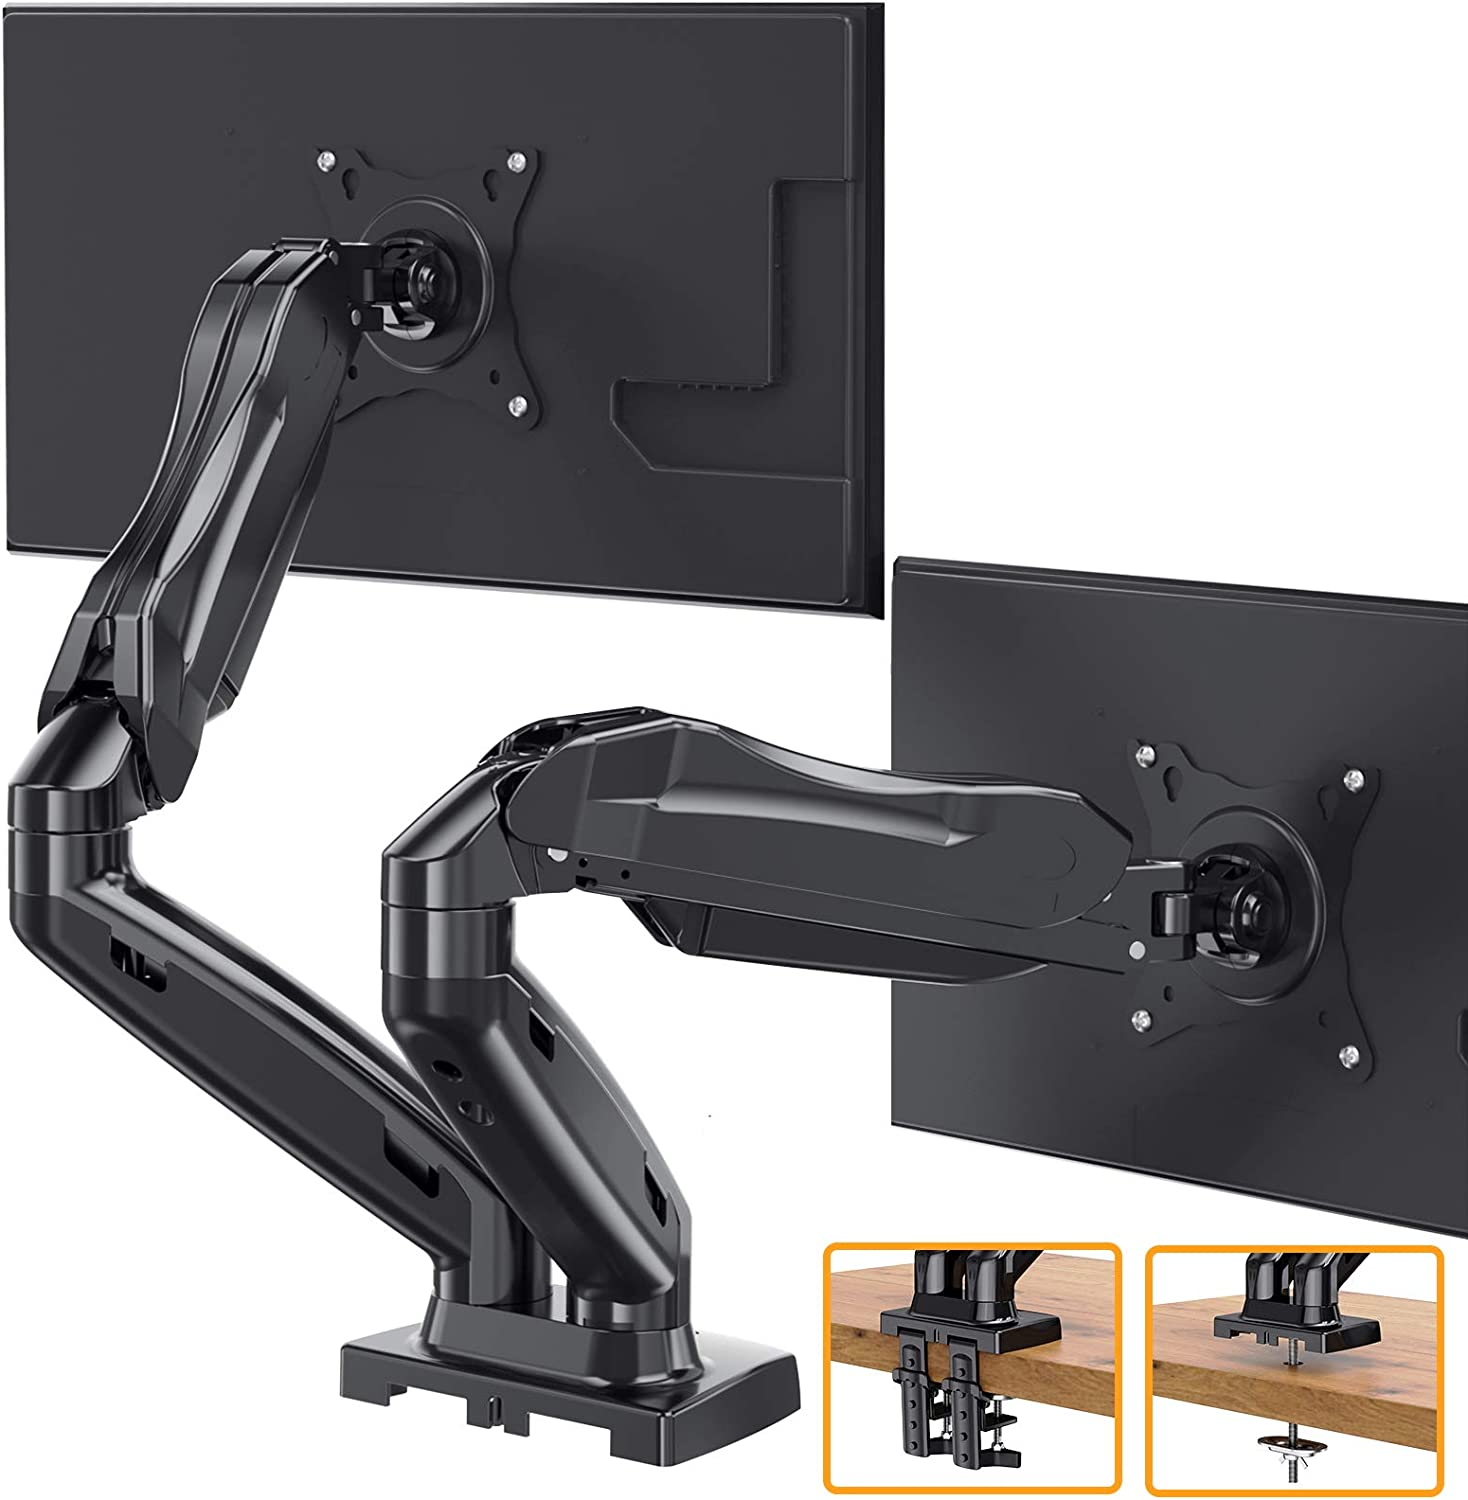 ErGear Dual Arm Monitor Mount Stand, Adjustable Gas Spring Monitor Desk Mount, Swivel VESA Mount with C Clamp, Grommet Mounting For Most 17-27 Inch Flat Curved Computer Monitor Screens up to 14.3lbs